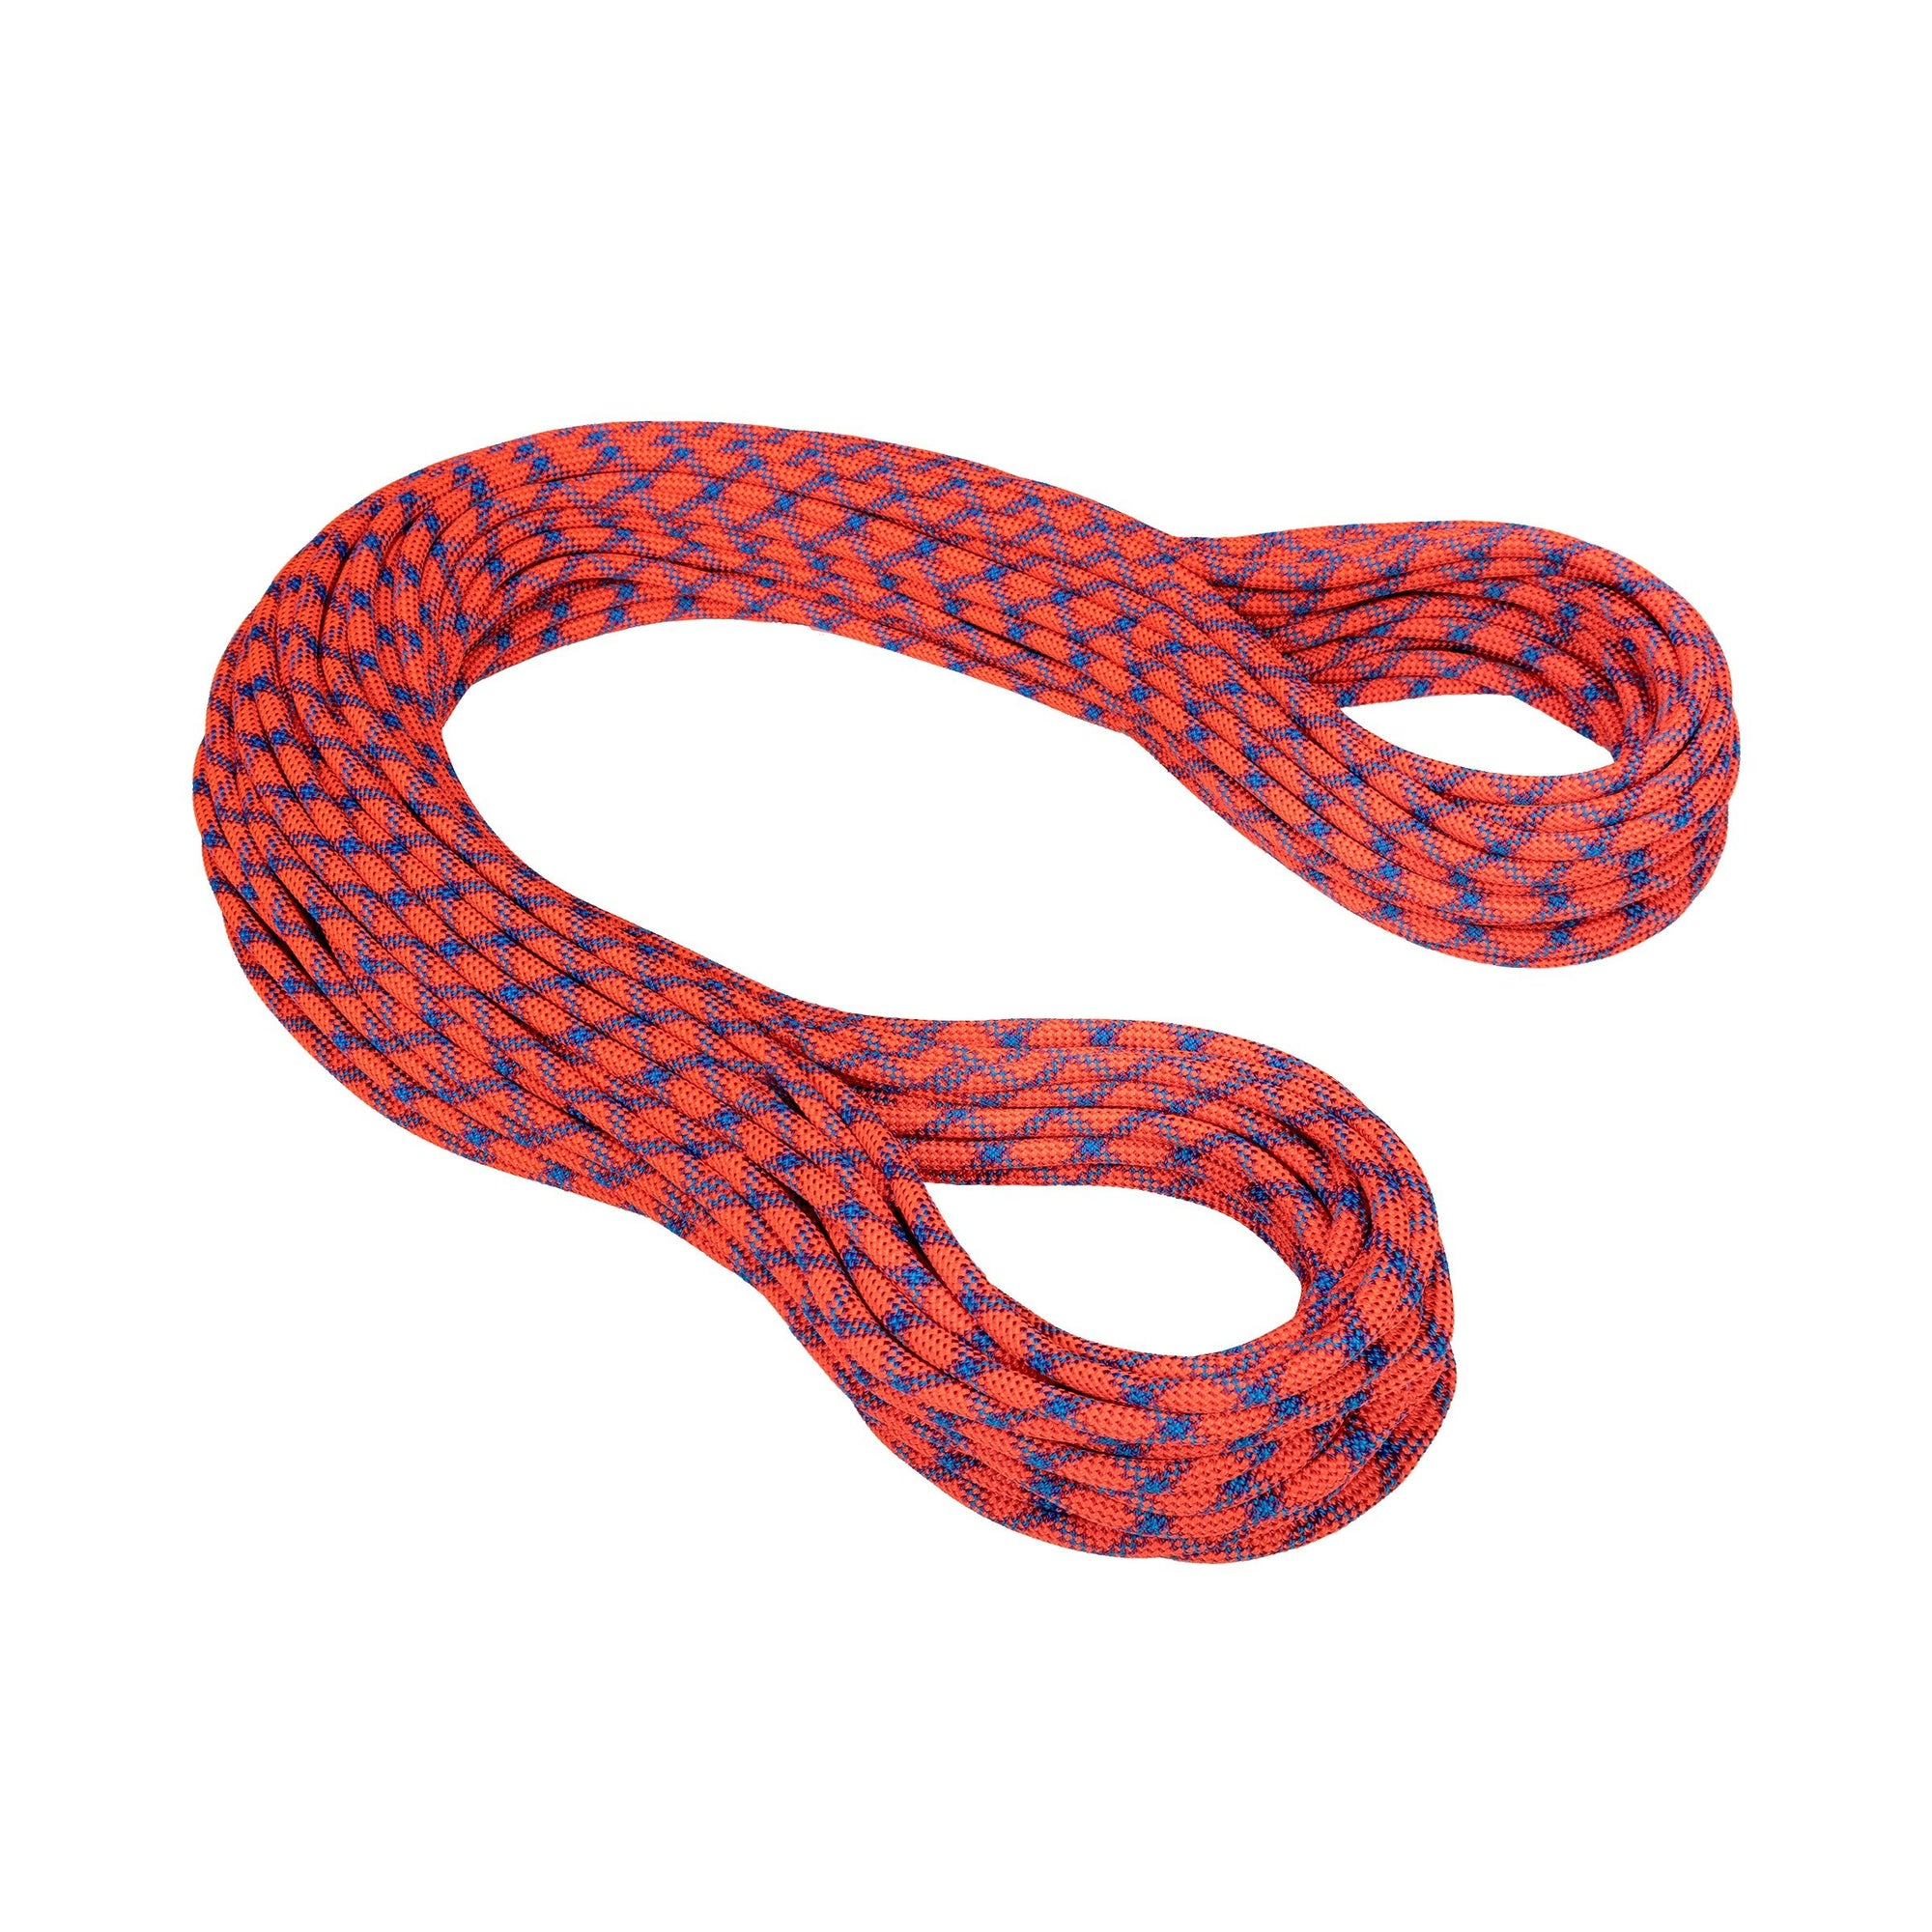 Mammut 9.8mm Eternity 60m PROTECT in Orange and Violet